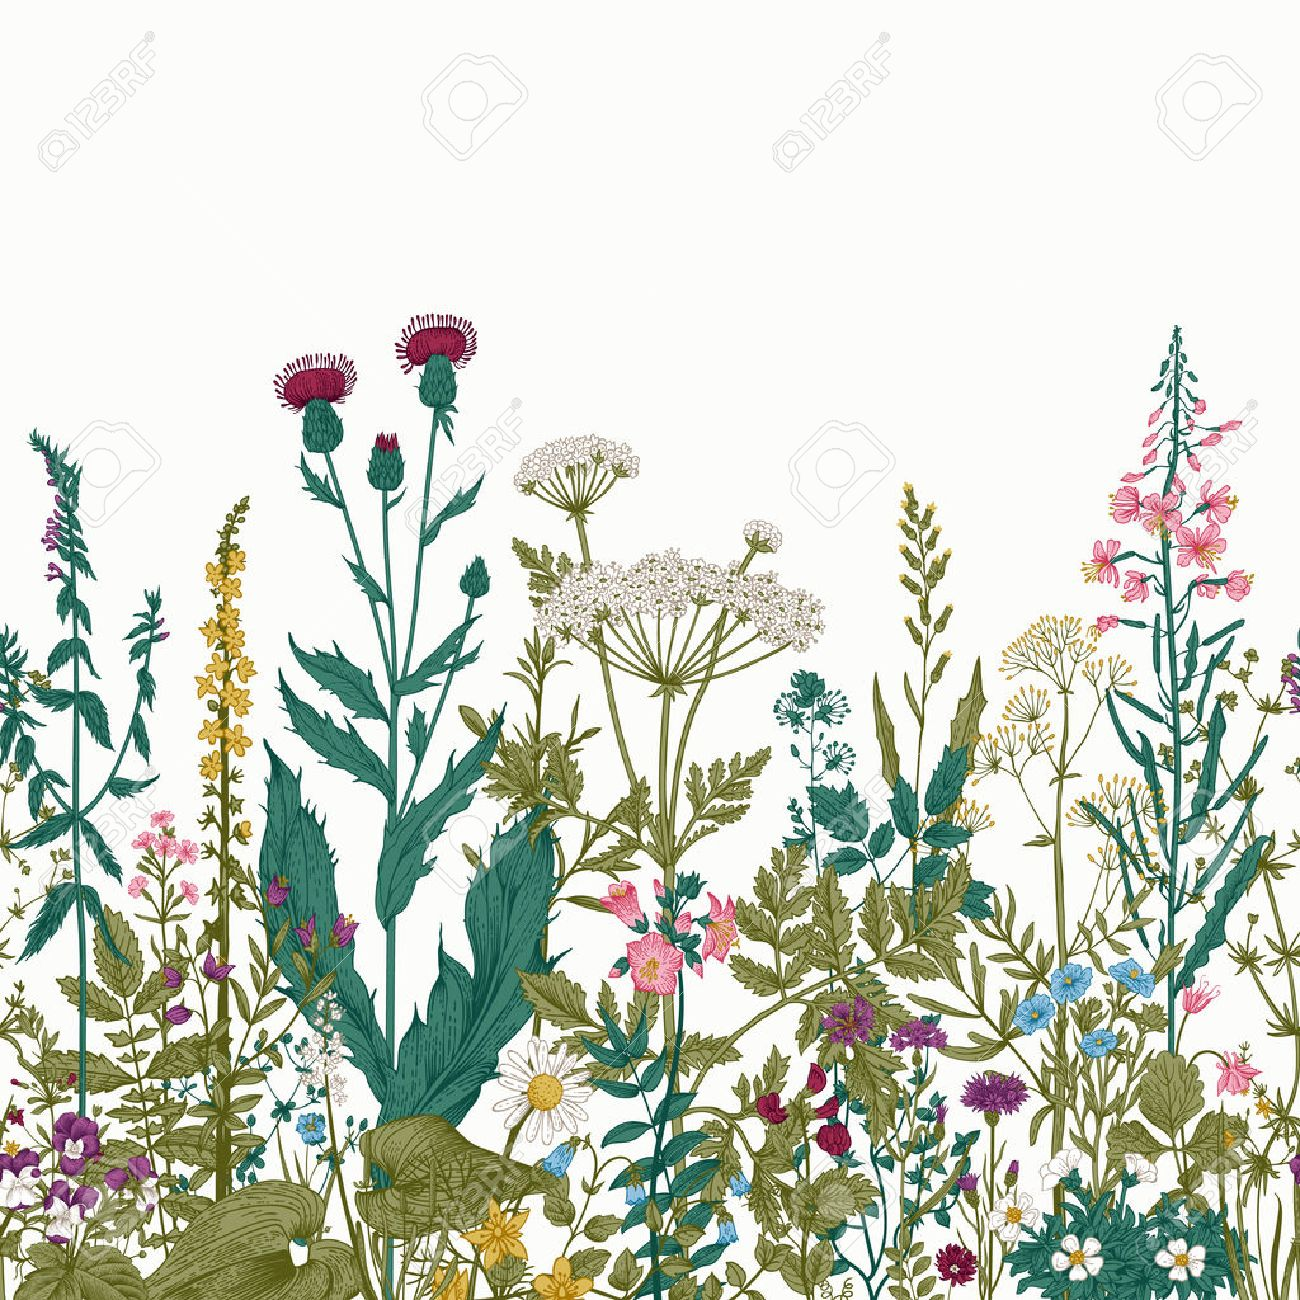 Vector seamless floral border. Herbs and wild flowers. Botanical Illustration engraving style. Colorful - 52411605